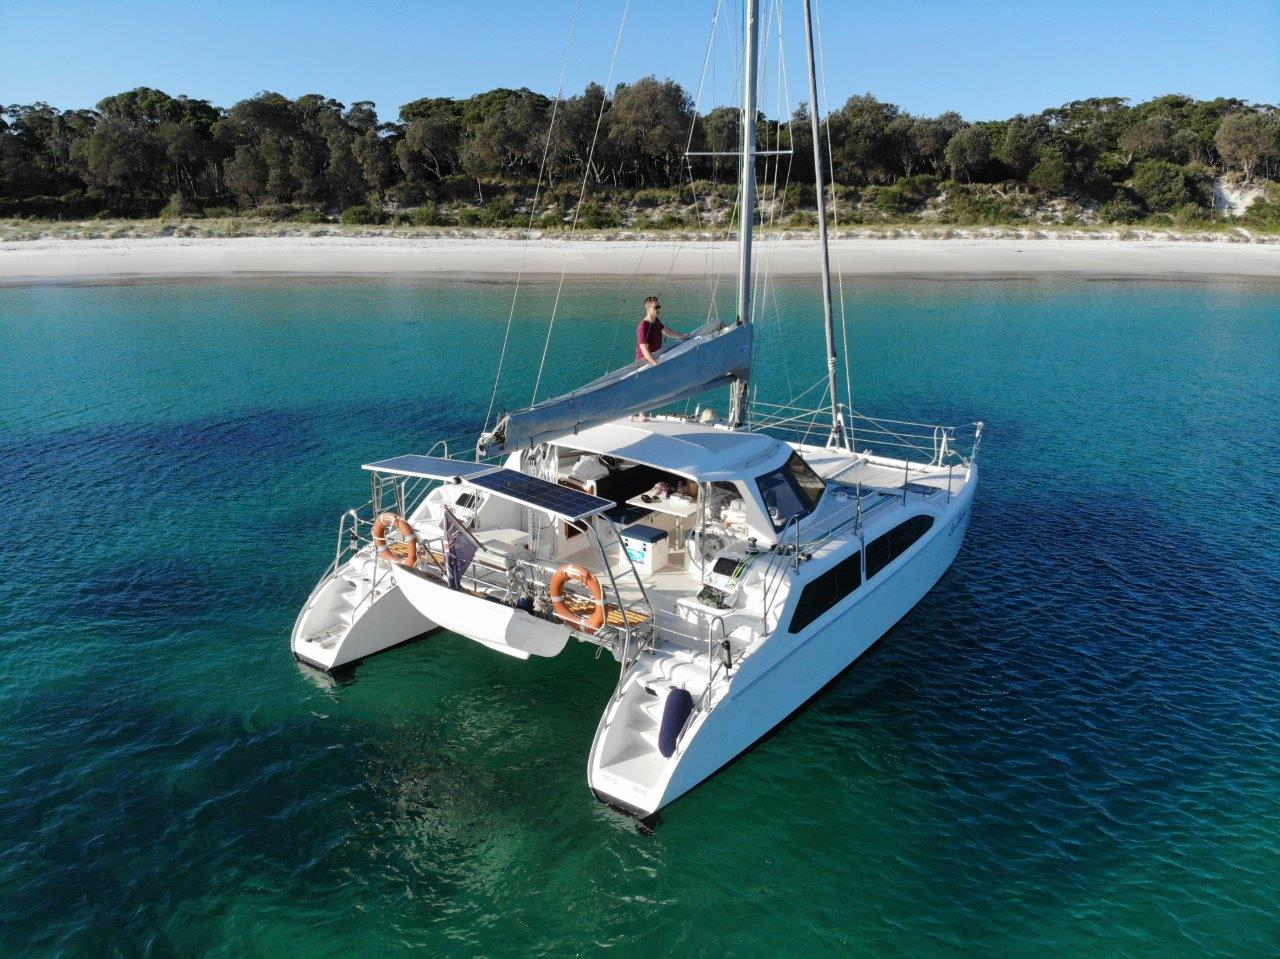 Seabattical - An open plan cruising catamaran fully equipped with BBQ, soundsystem and more.